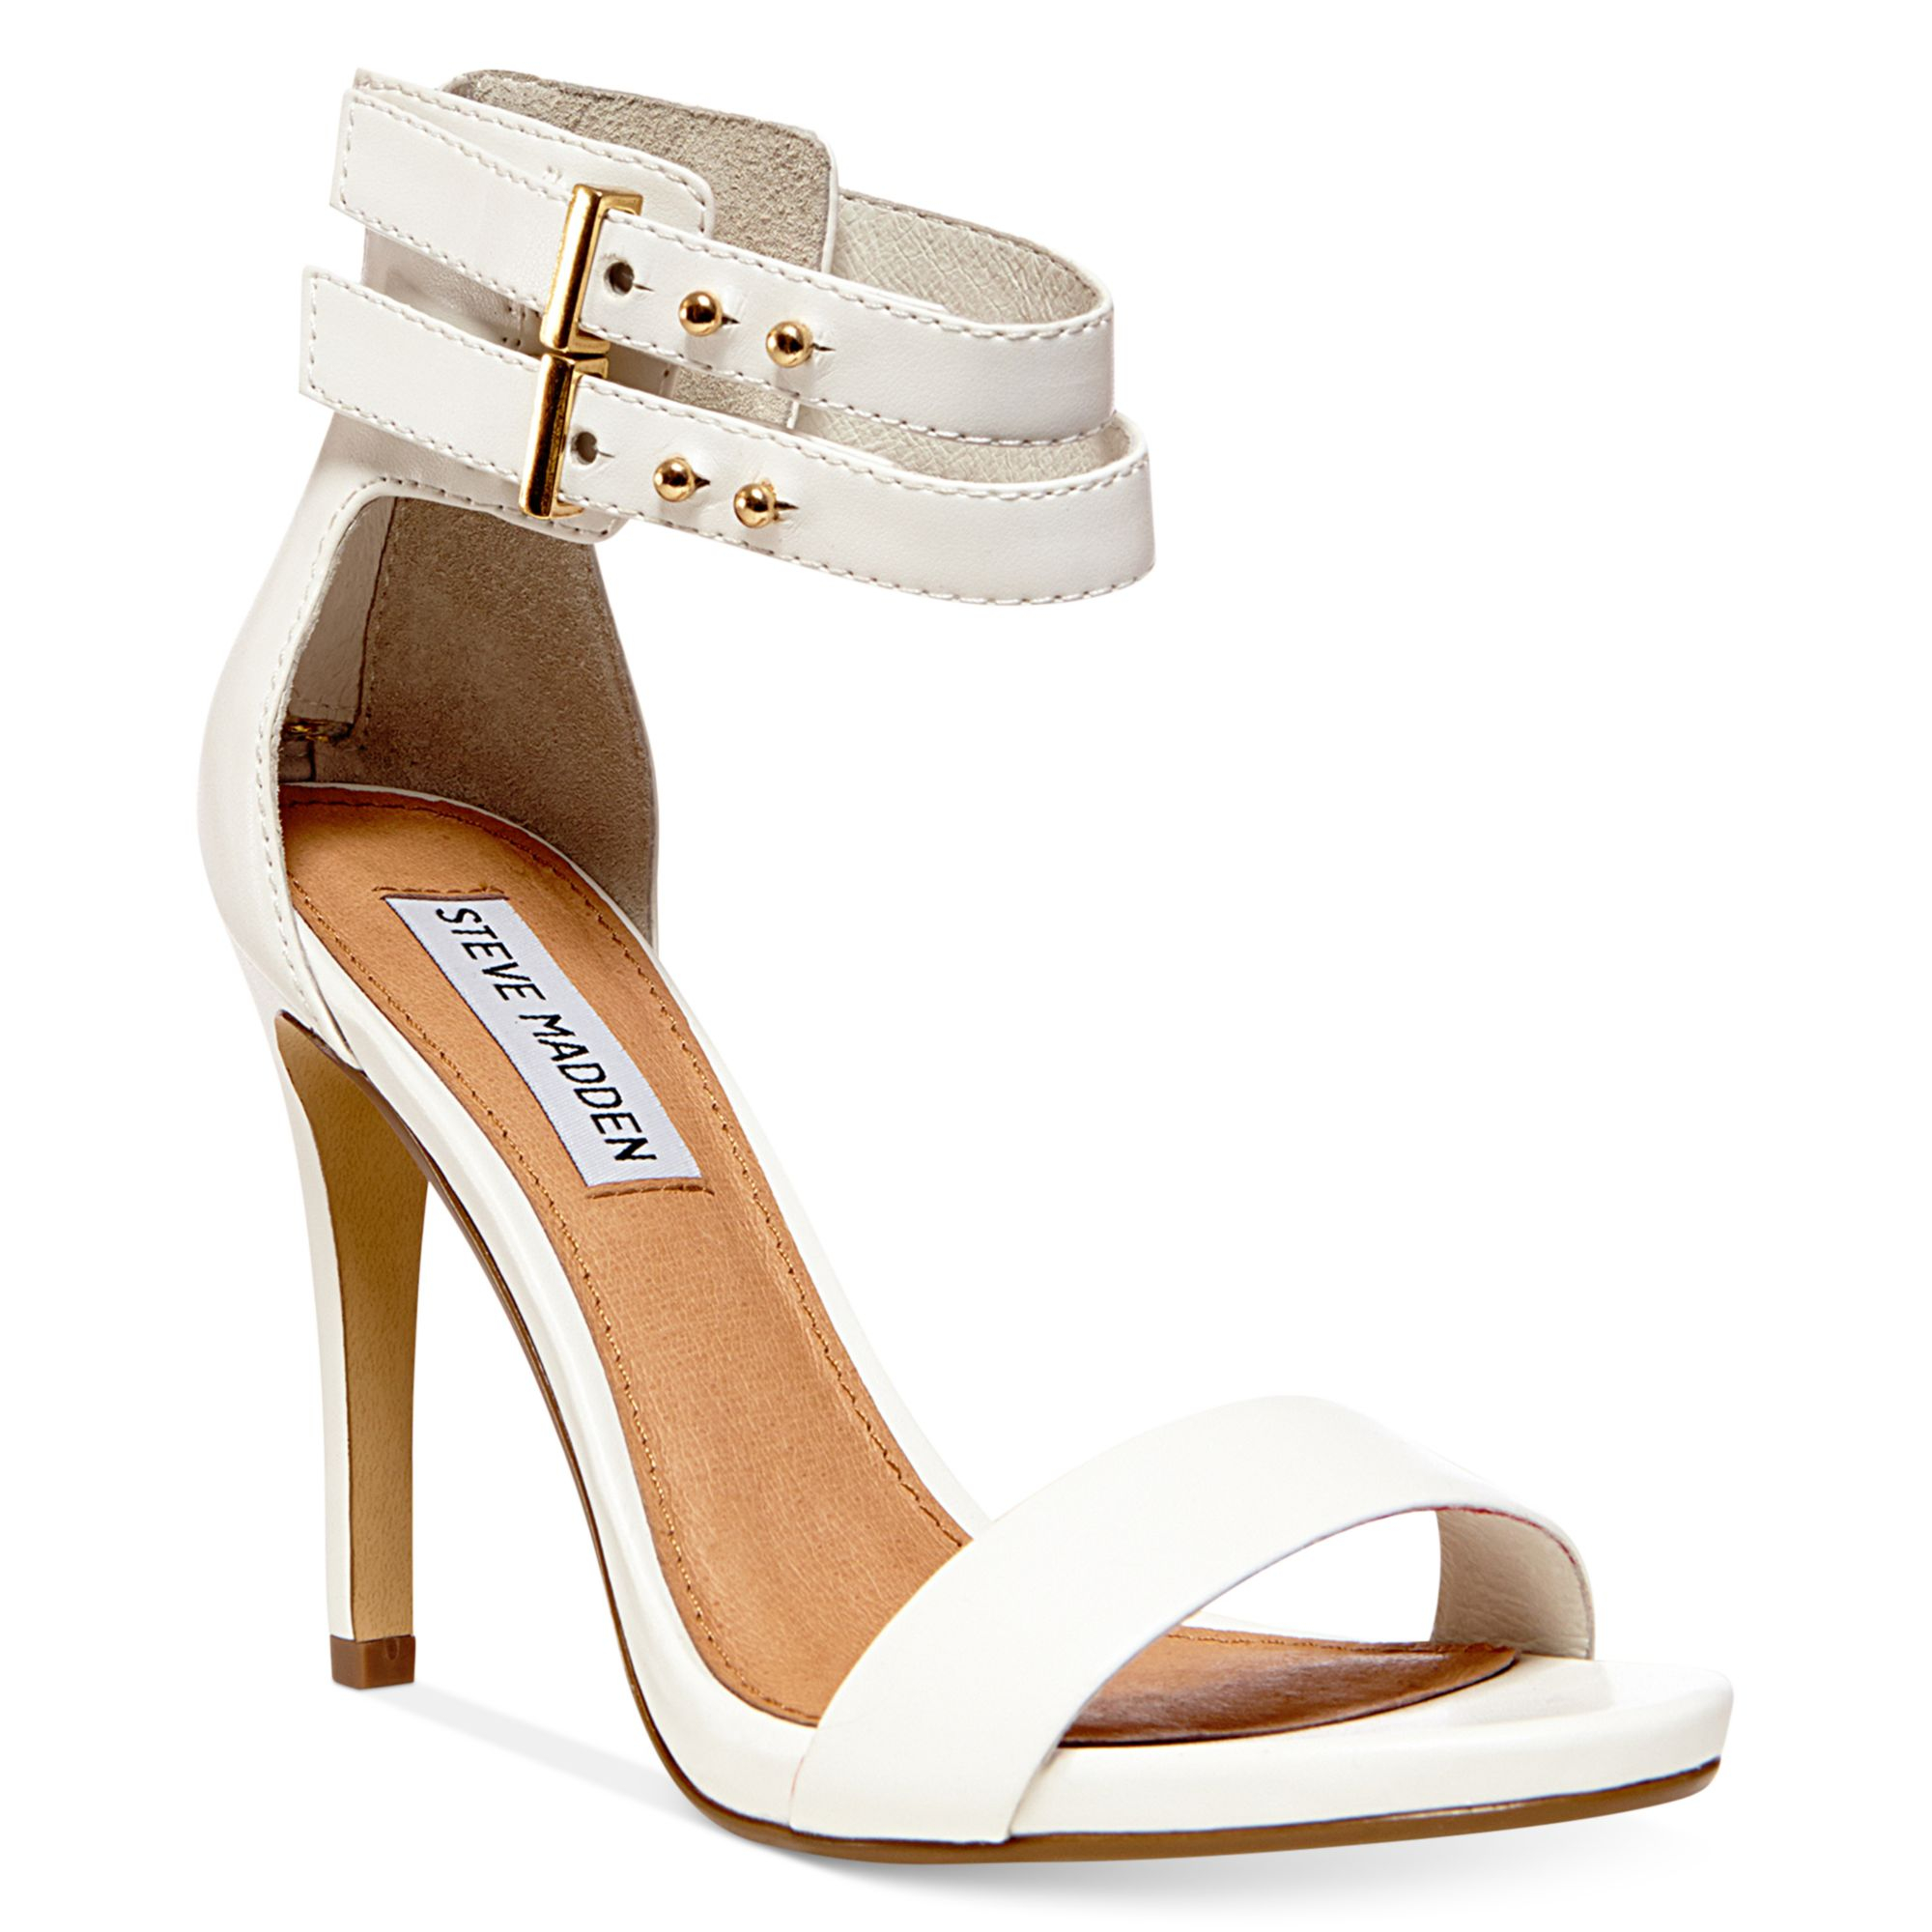 6c9bde42c56 Lyst - Steve Madden Kaylaa Two Piece Sandals in White